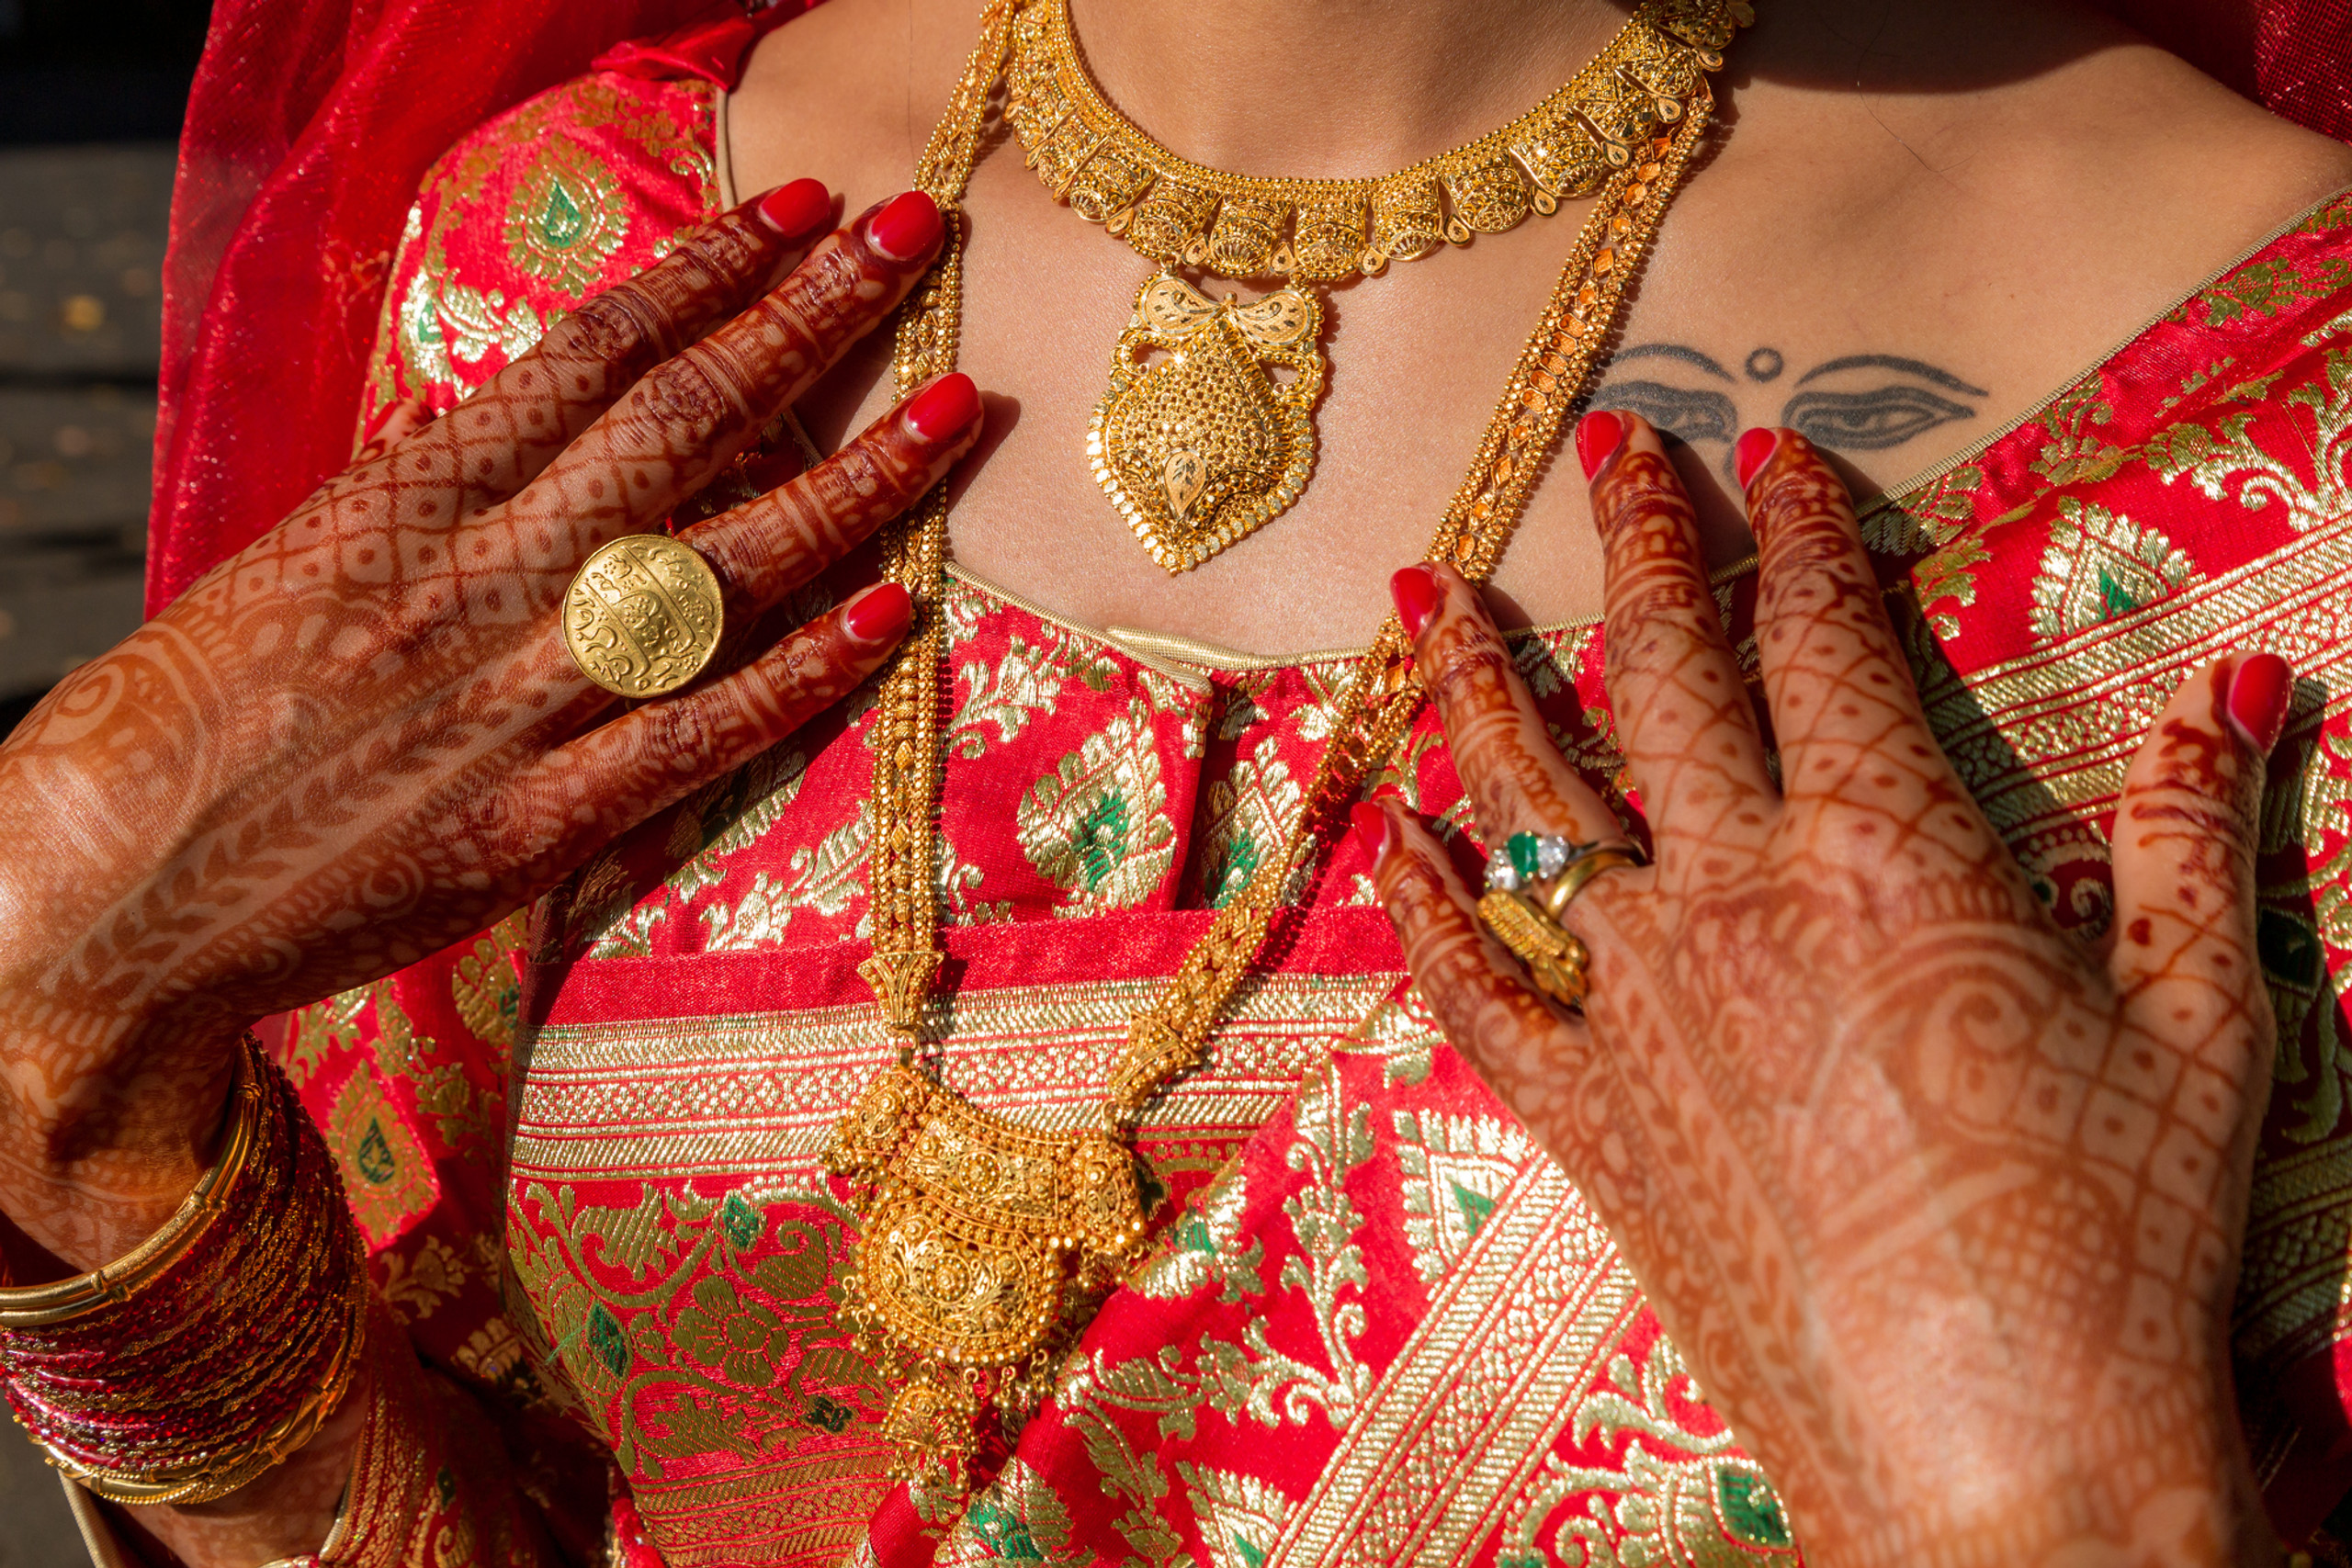 Nepali bride showing off her wedding day henna tattoo, jewelry and ceremonial dress before the Hindu Ceremony at the ISKCON of DC in Potomac, Maryland.